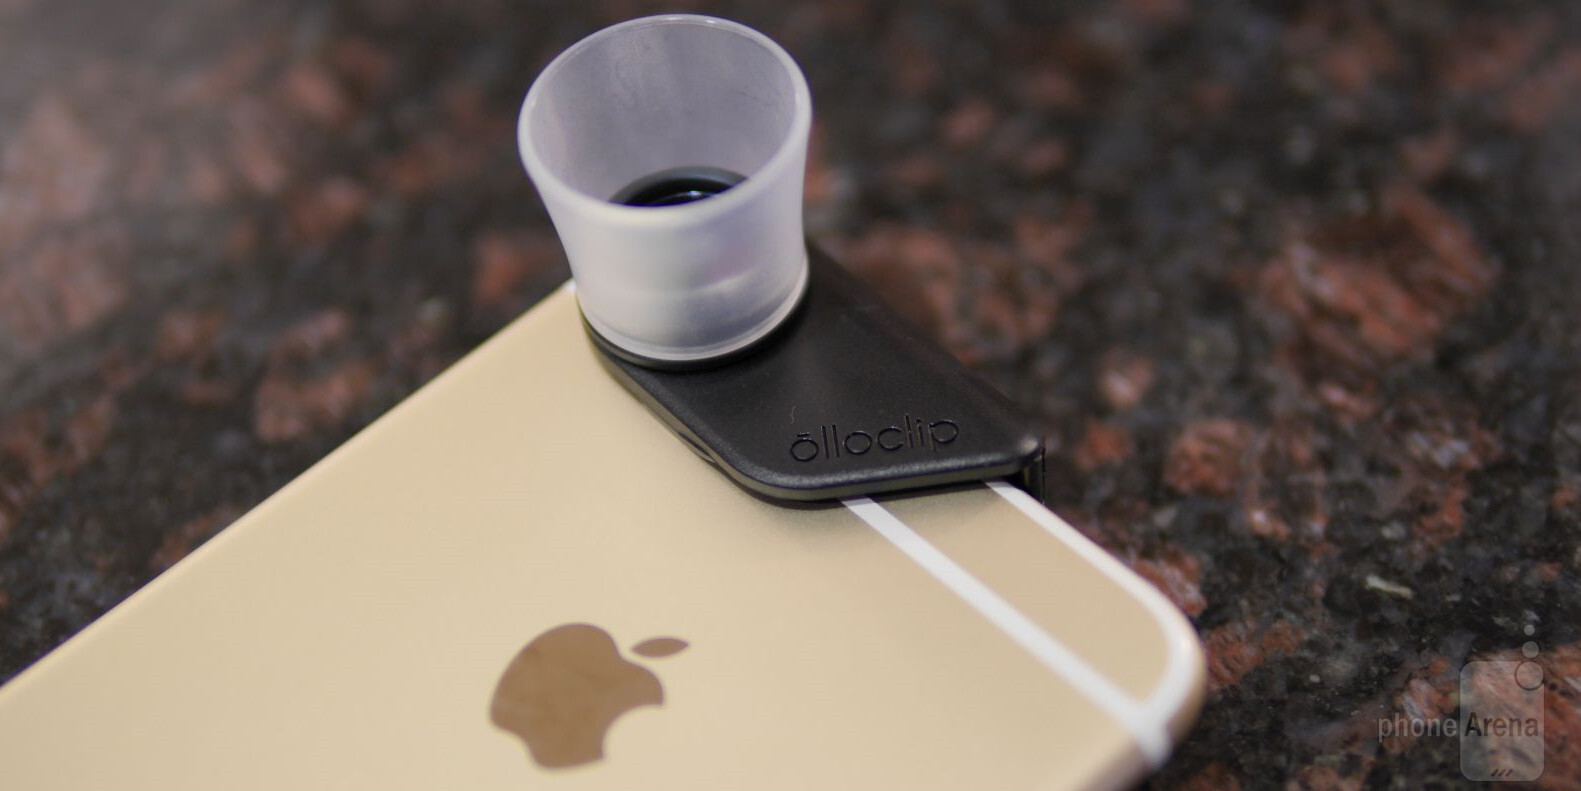 on sale 883f4 9ca54 Olloclip Macro 3-in-1 Lens for Apple iPhone 6/6 Plus Review - PhoneArena